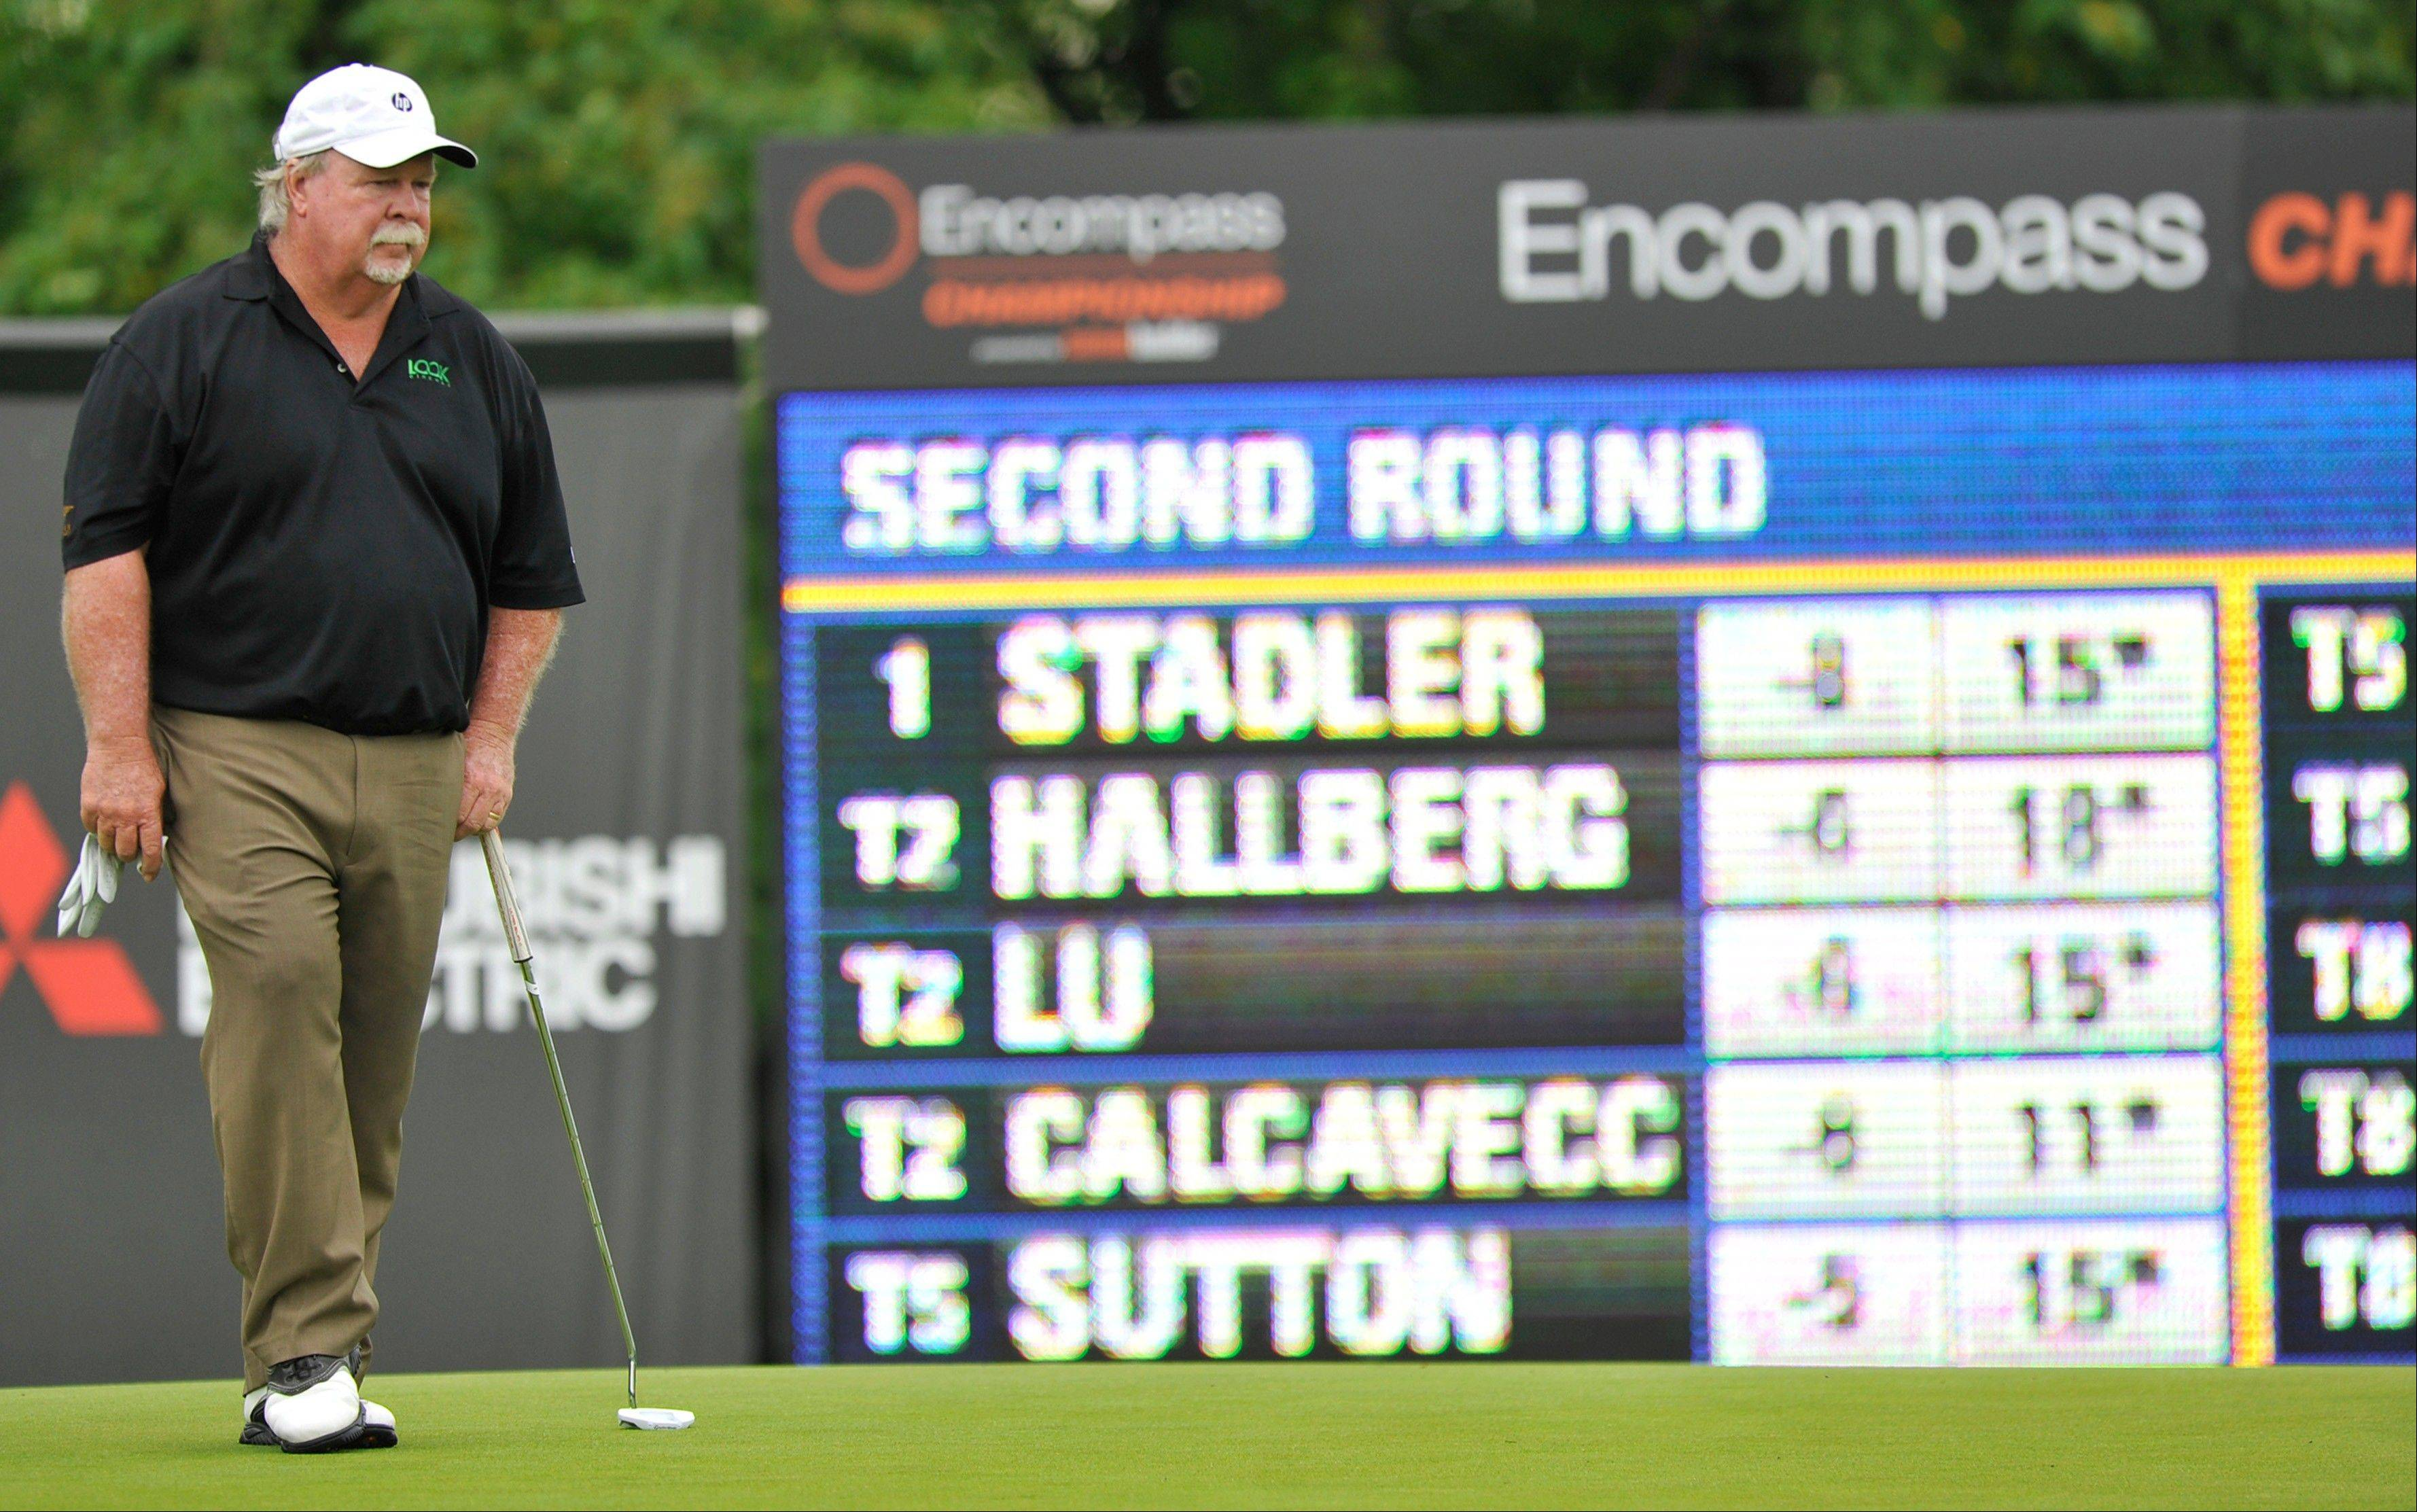 Craig Stadler lines up his putt on the 16th hole during the second round of the Encompass Championship at North Shore County Club in Glenview on Saturday.